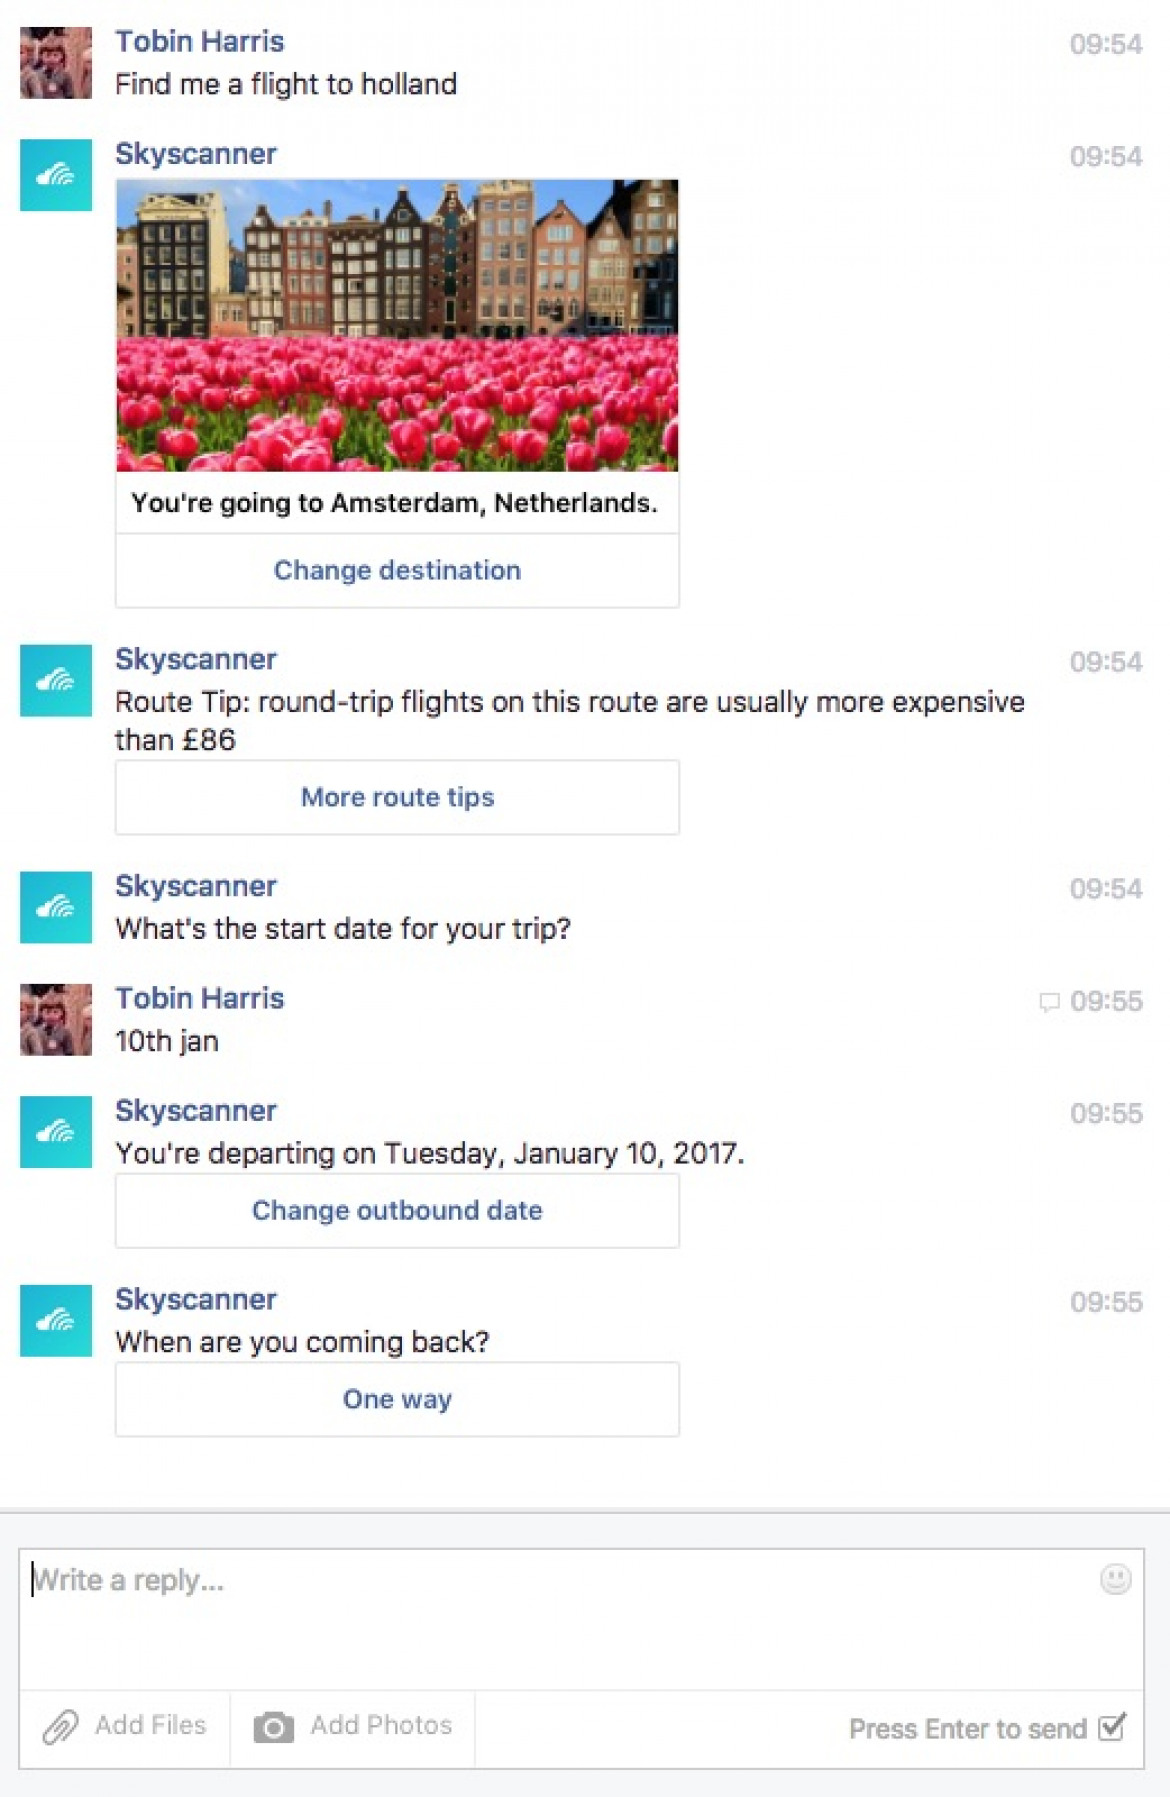 Developing a Facebook Messanger Chatbot